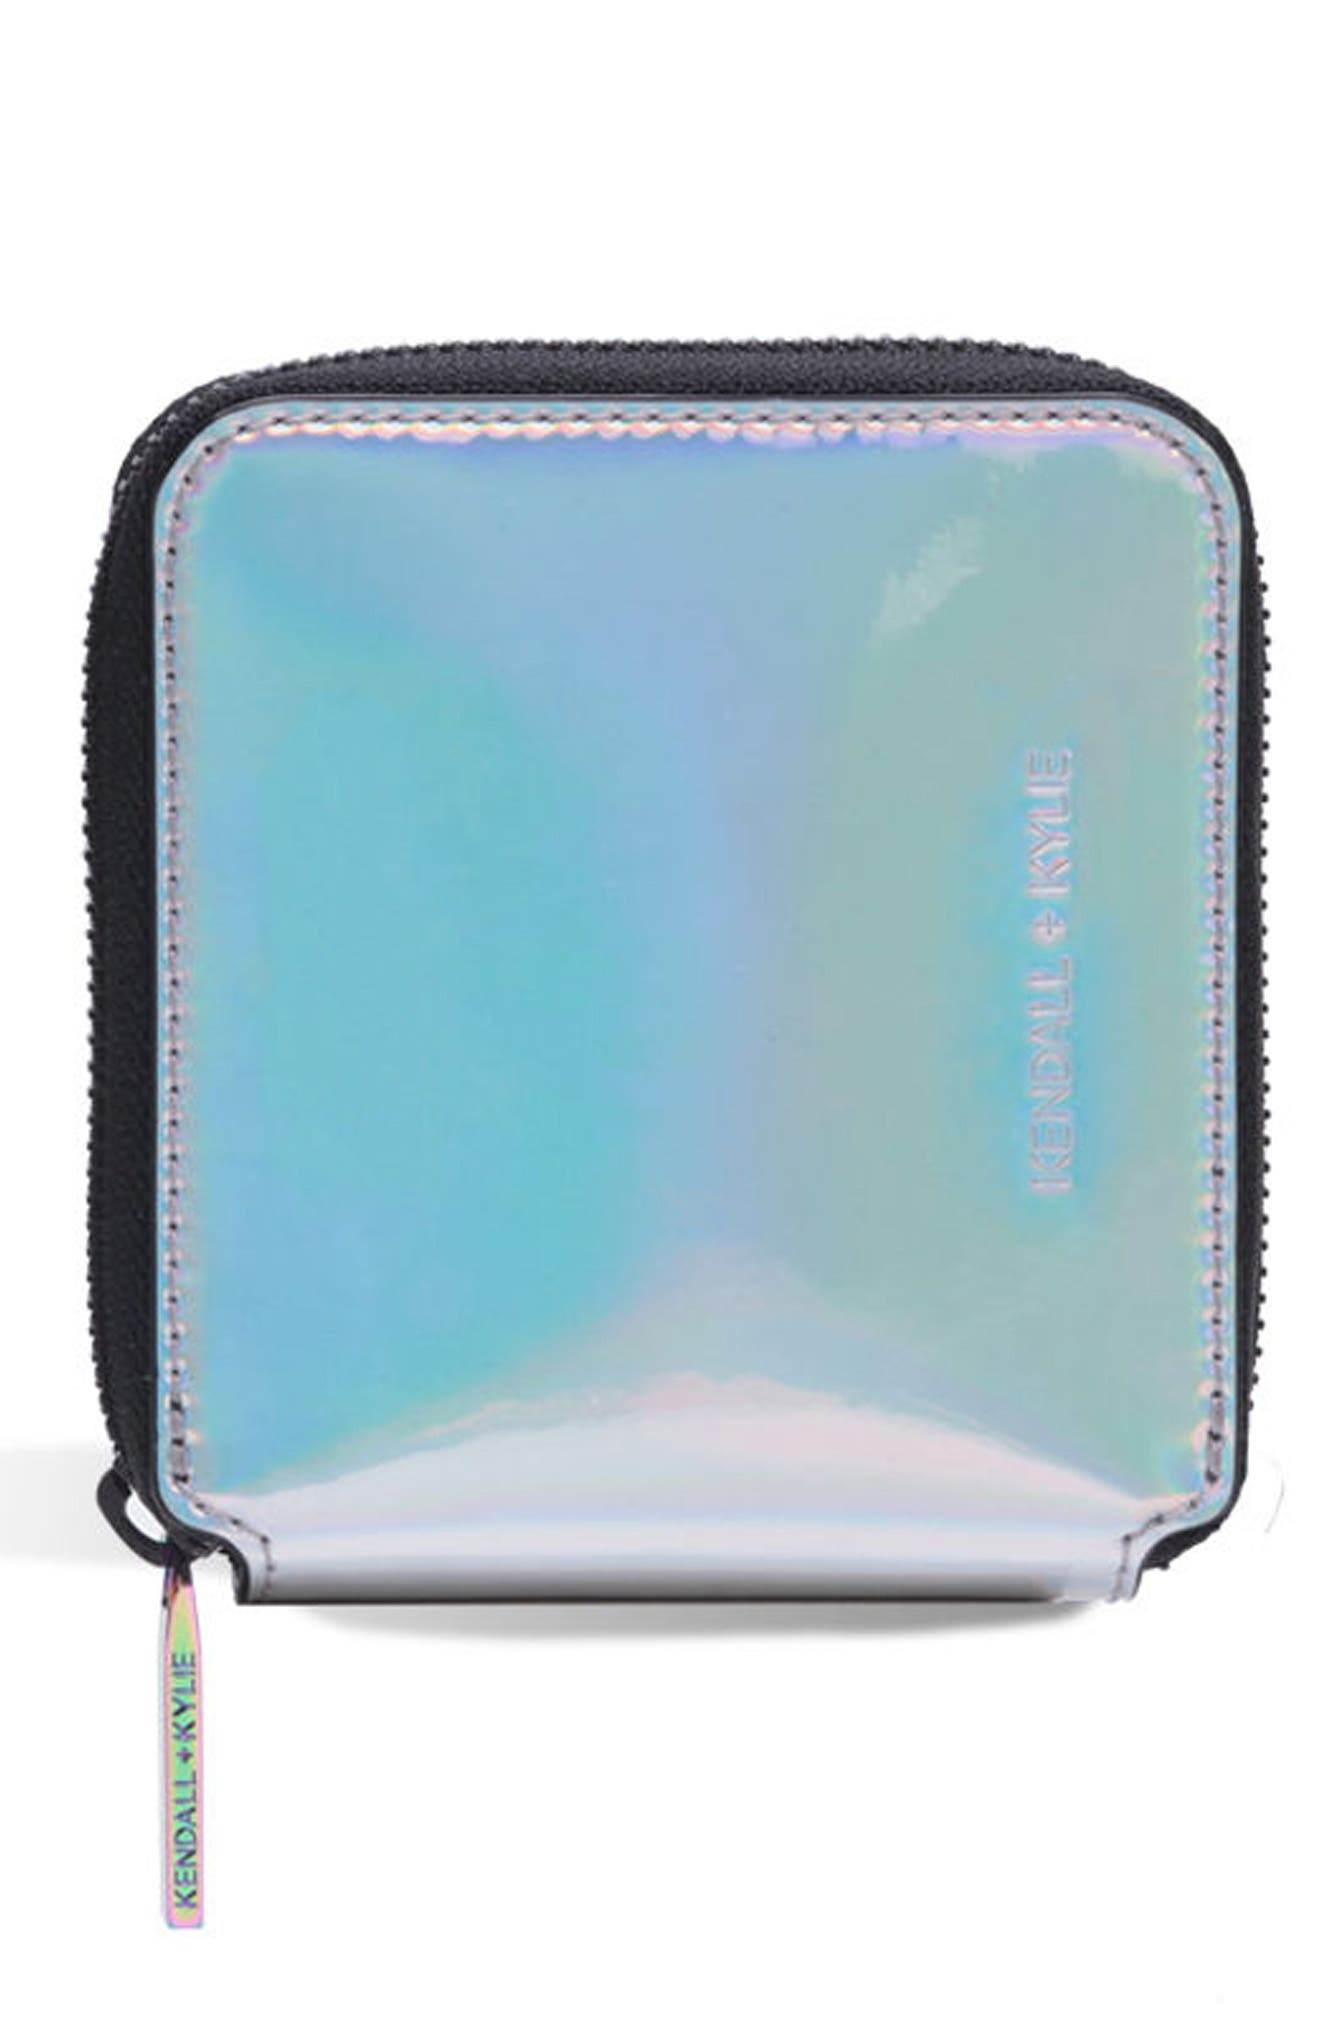 KENDALL + KYLIE Brodie Faux Leather Wallet